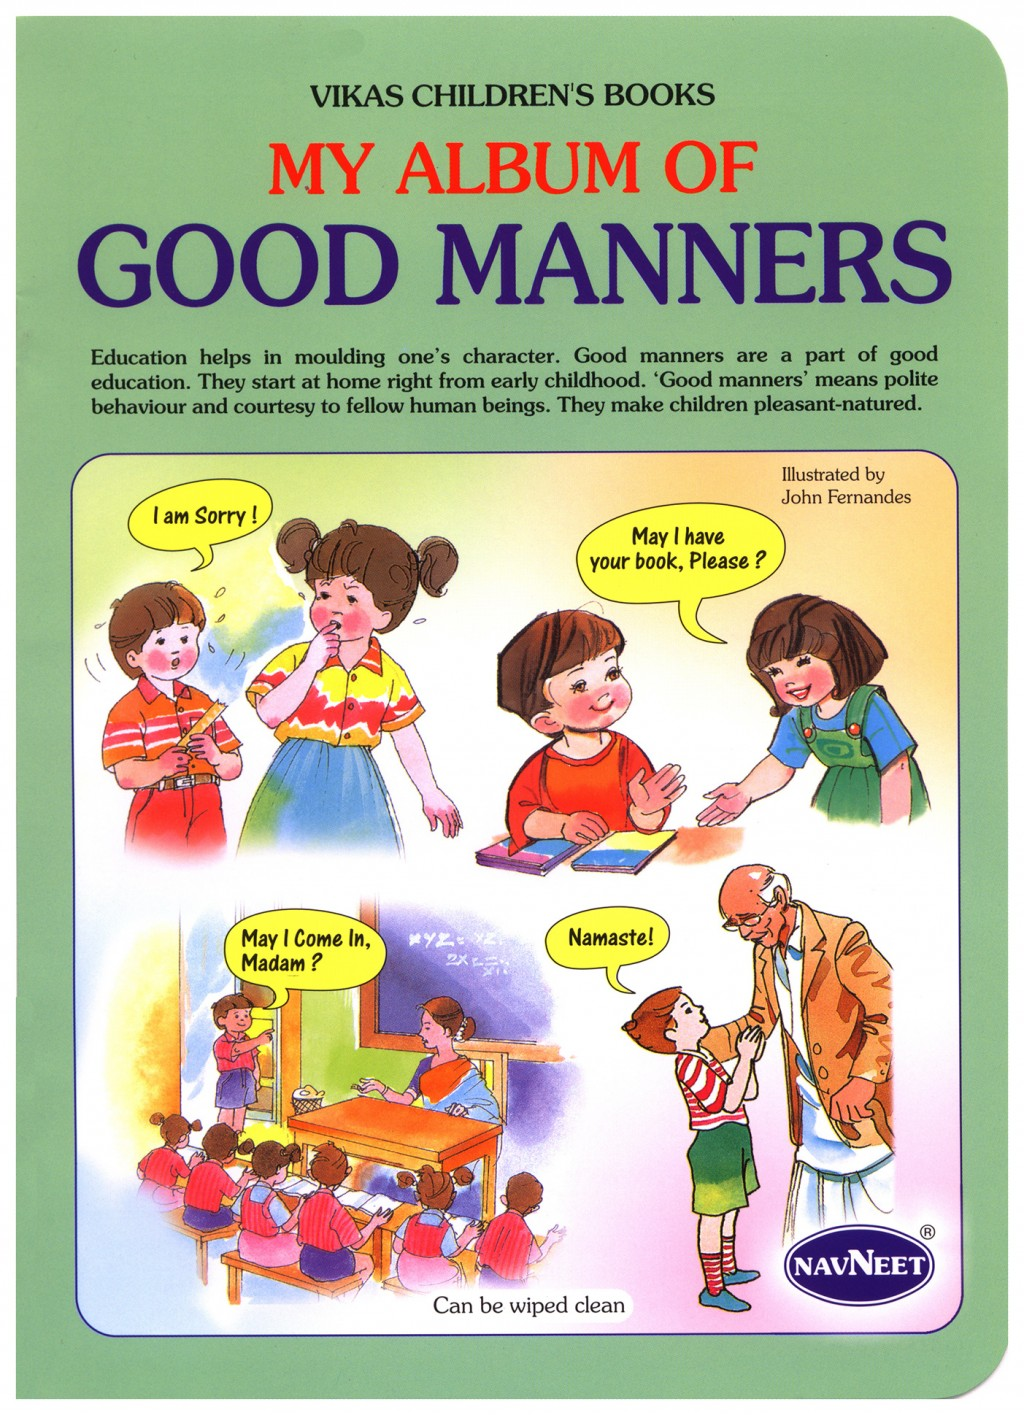 007 Basic Table Manners Essay On Good For Child Wonderful Large